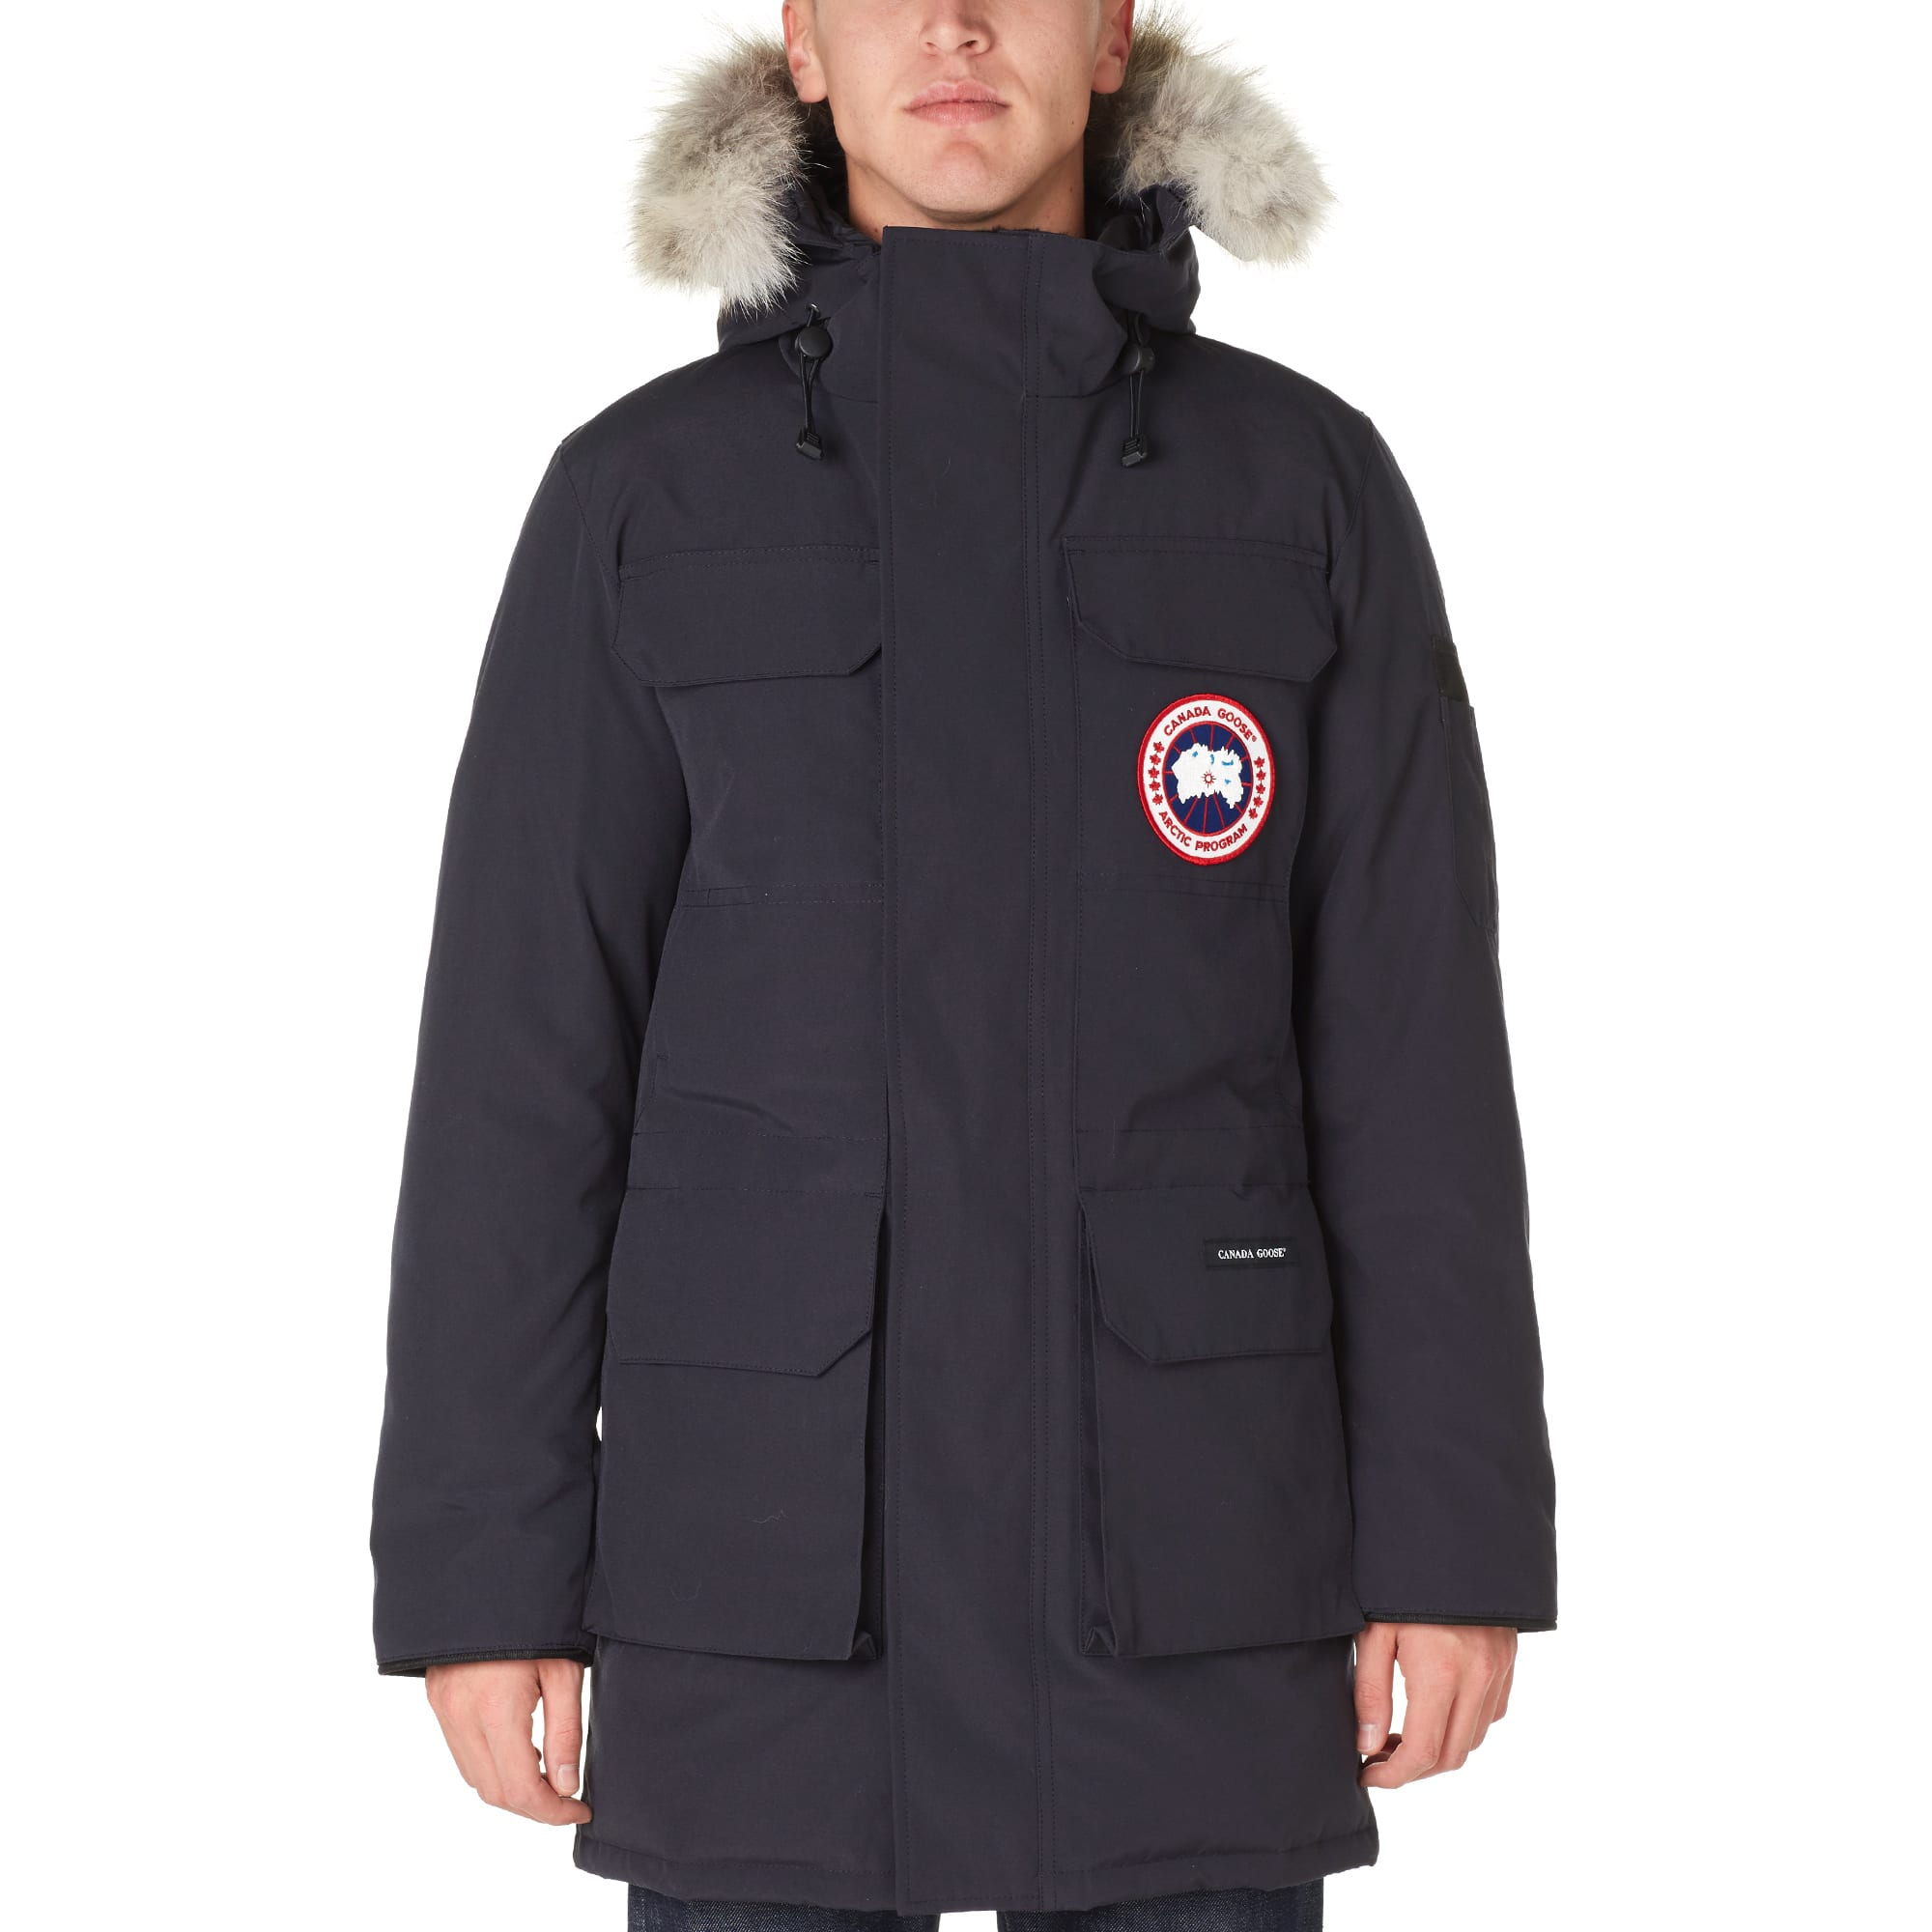 Goose Canada clothing pictures